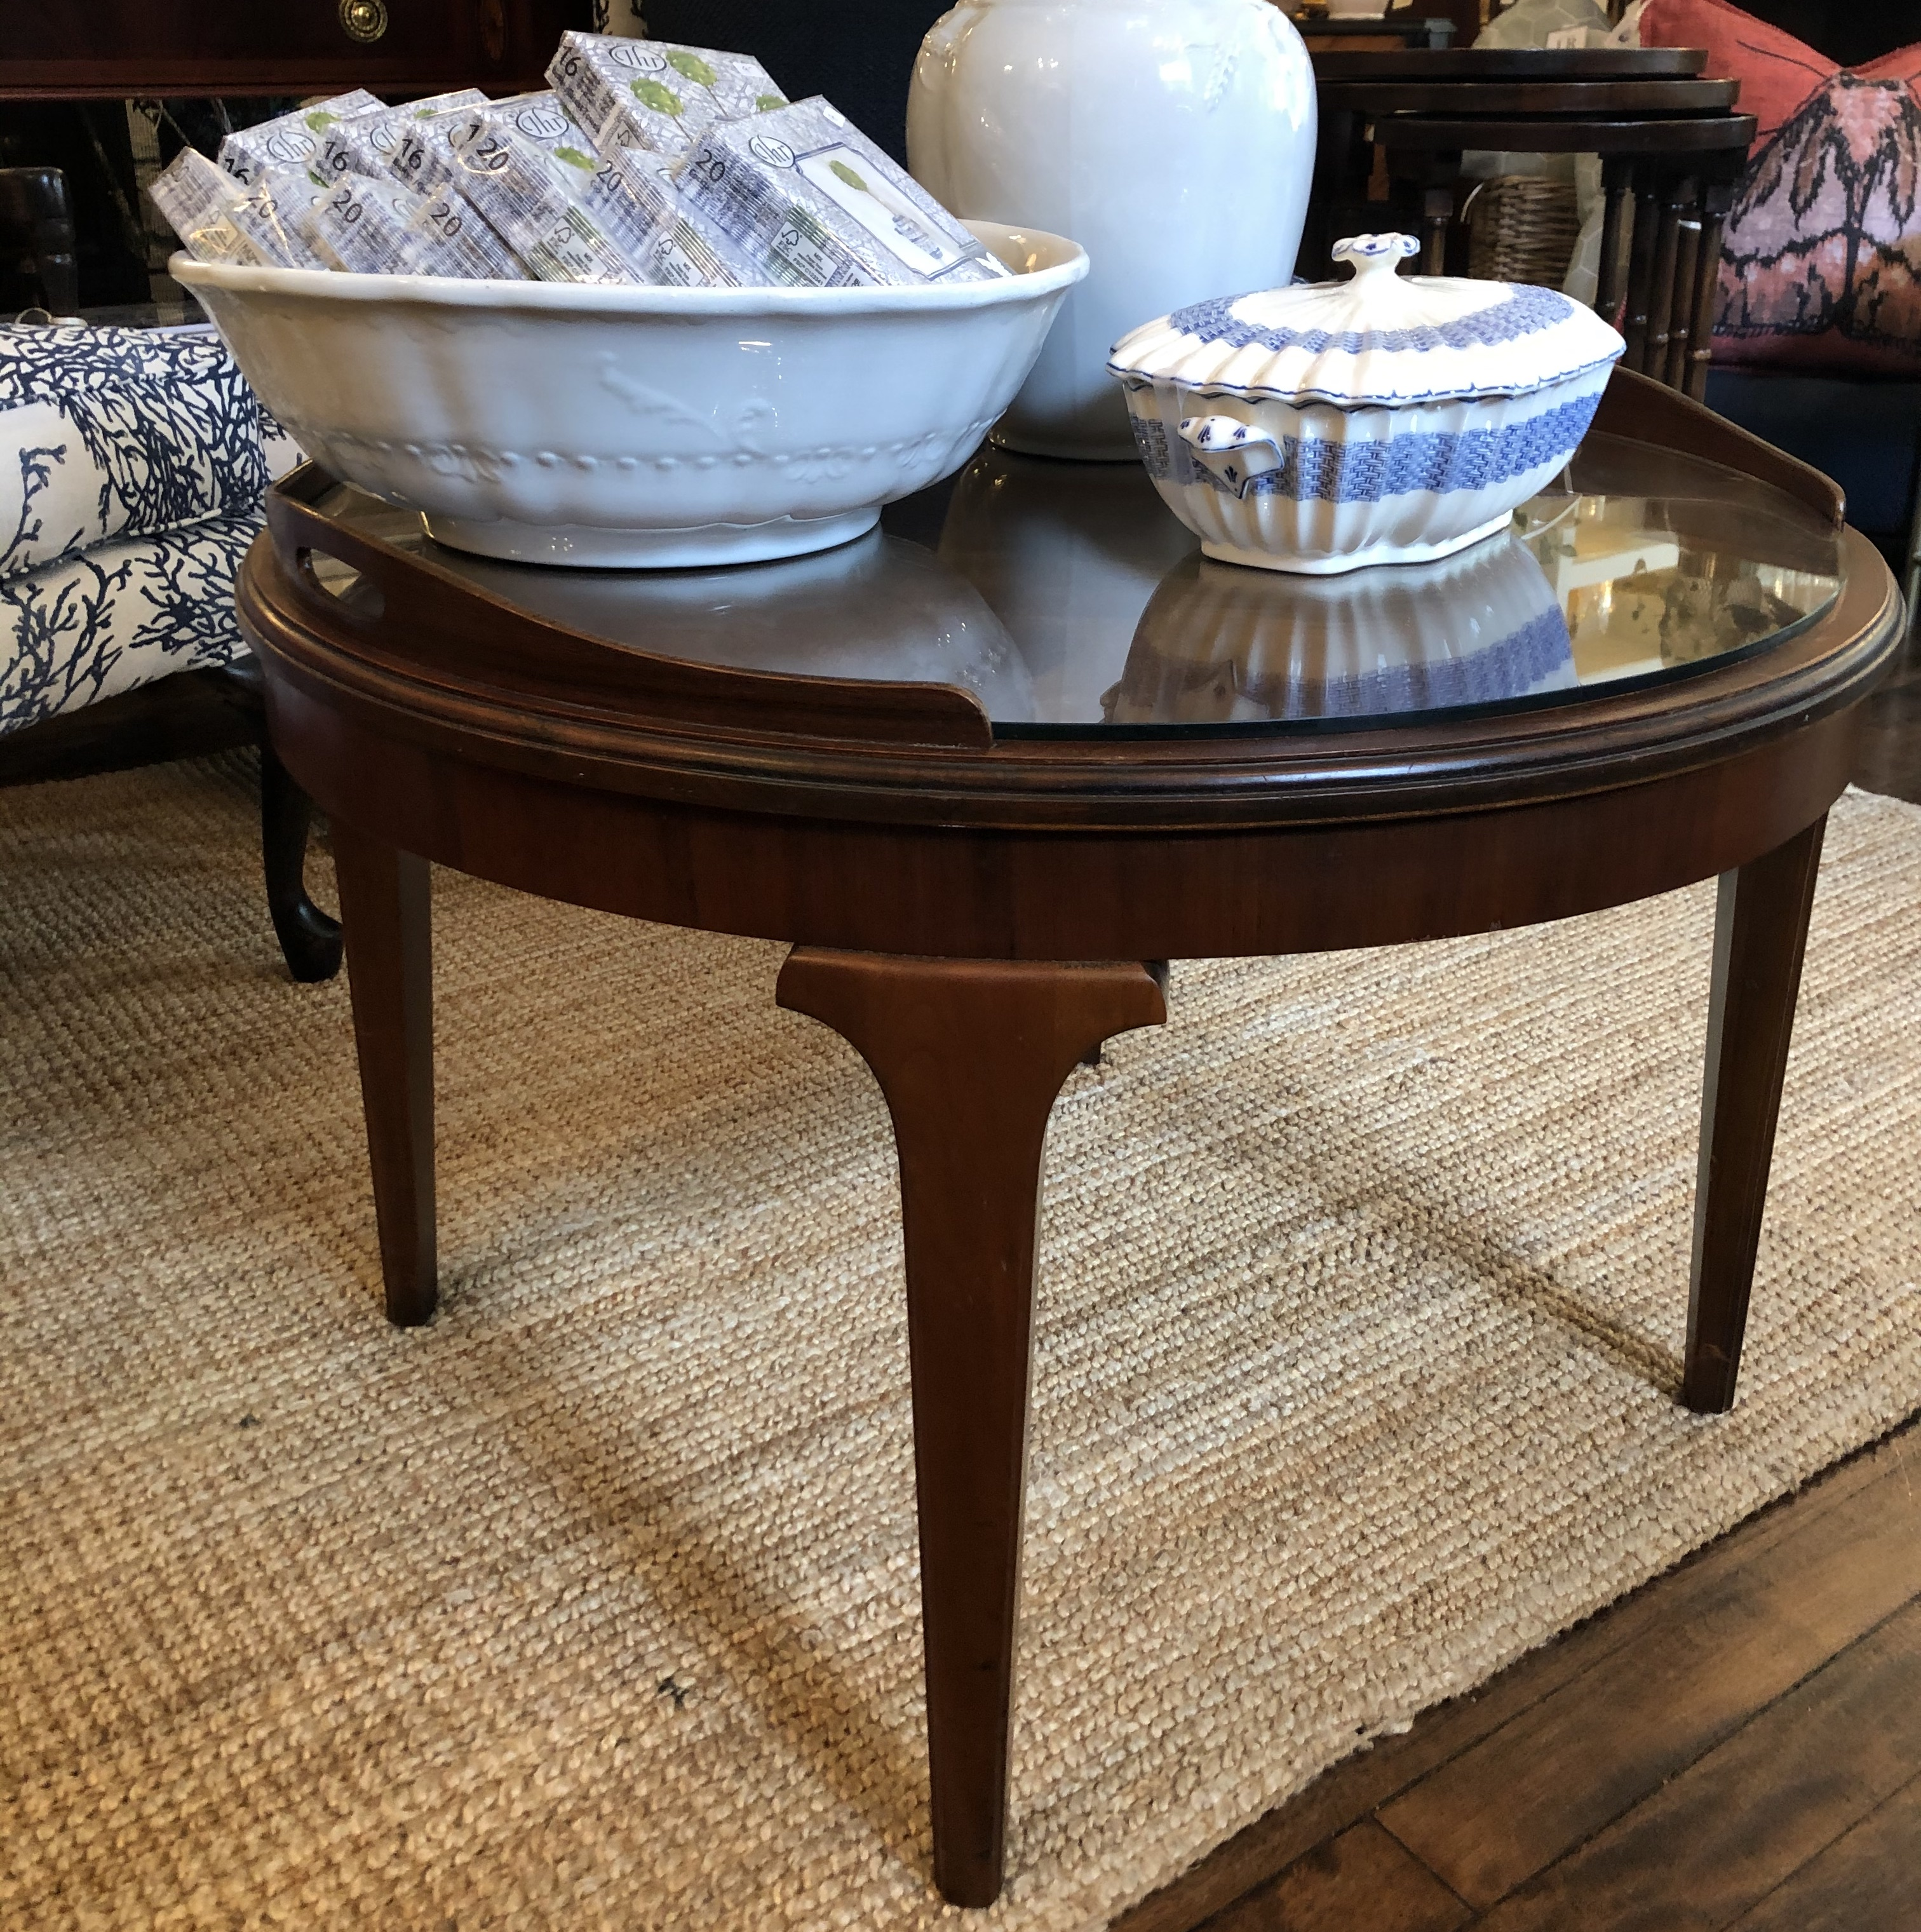 Vintage Round Wooden Coffee Table